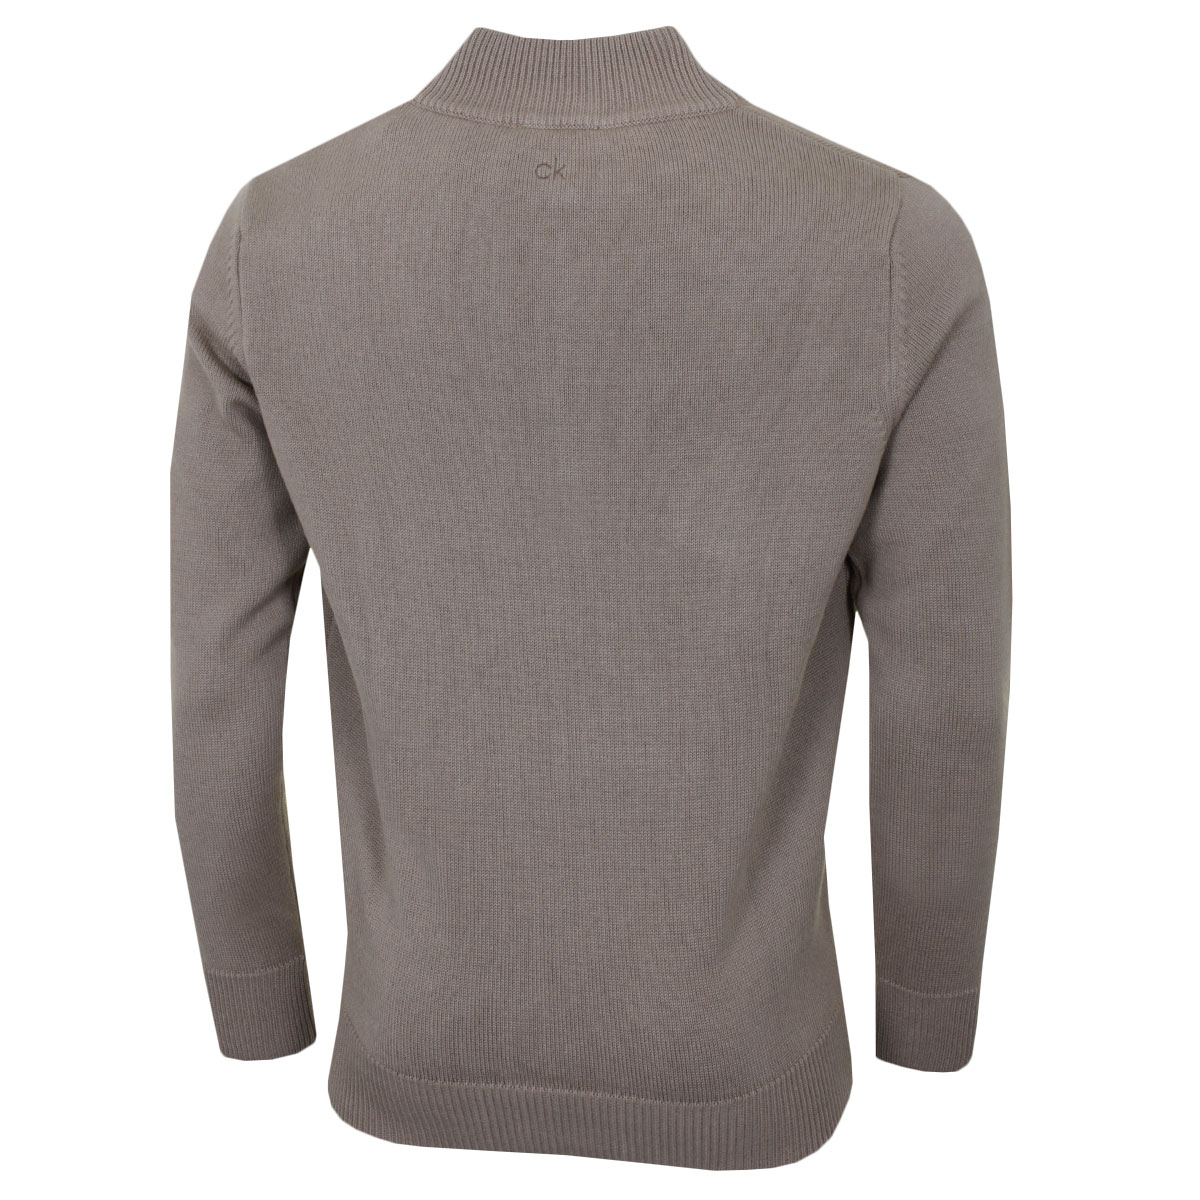 Calvin-Klein-Golf-Mens-2019-Chunky-Cotton-1-2-Zip-Golf-Top-Sweater-37-OFF-RRP thumbnail 40